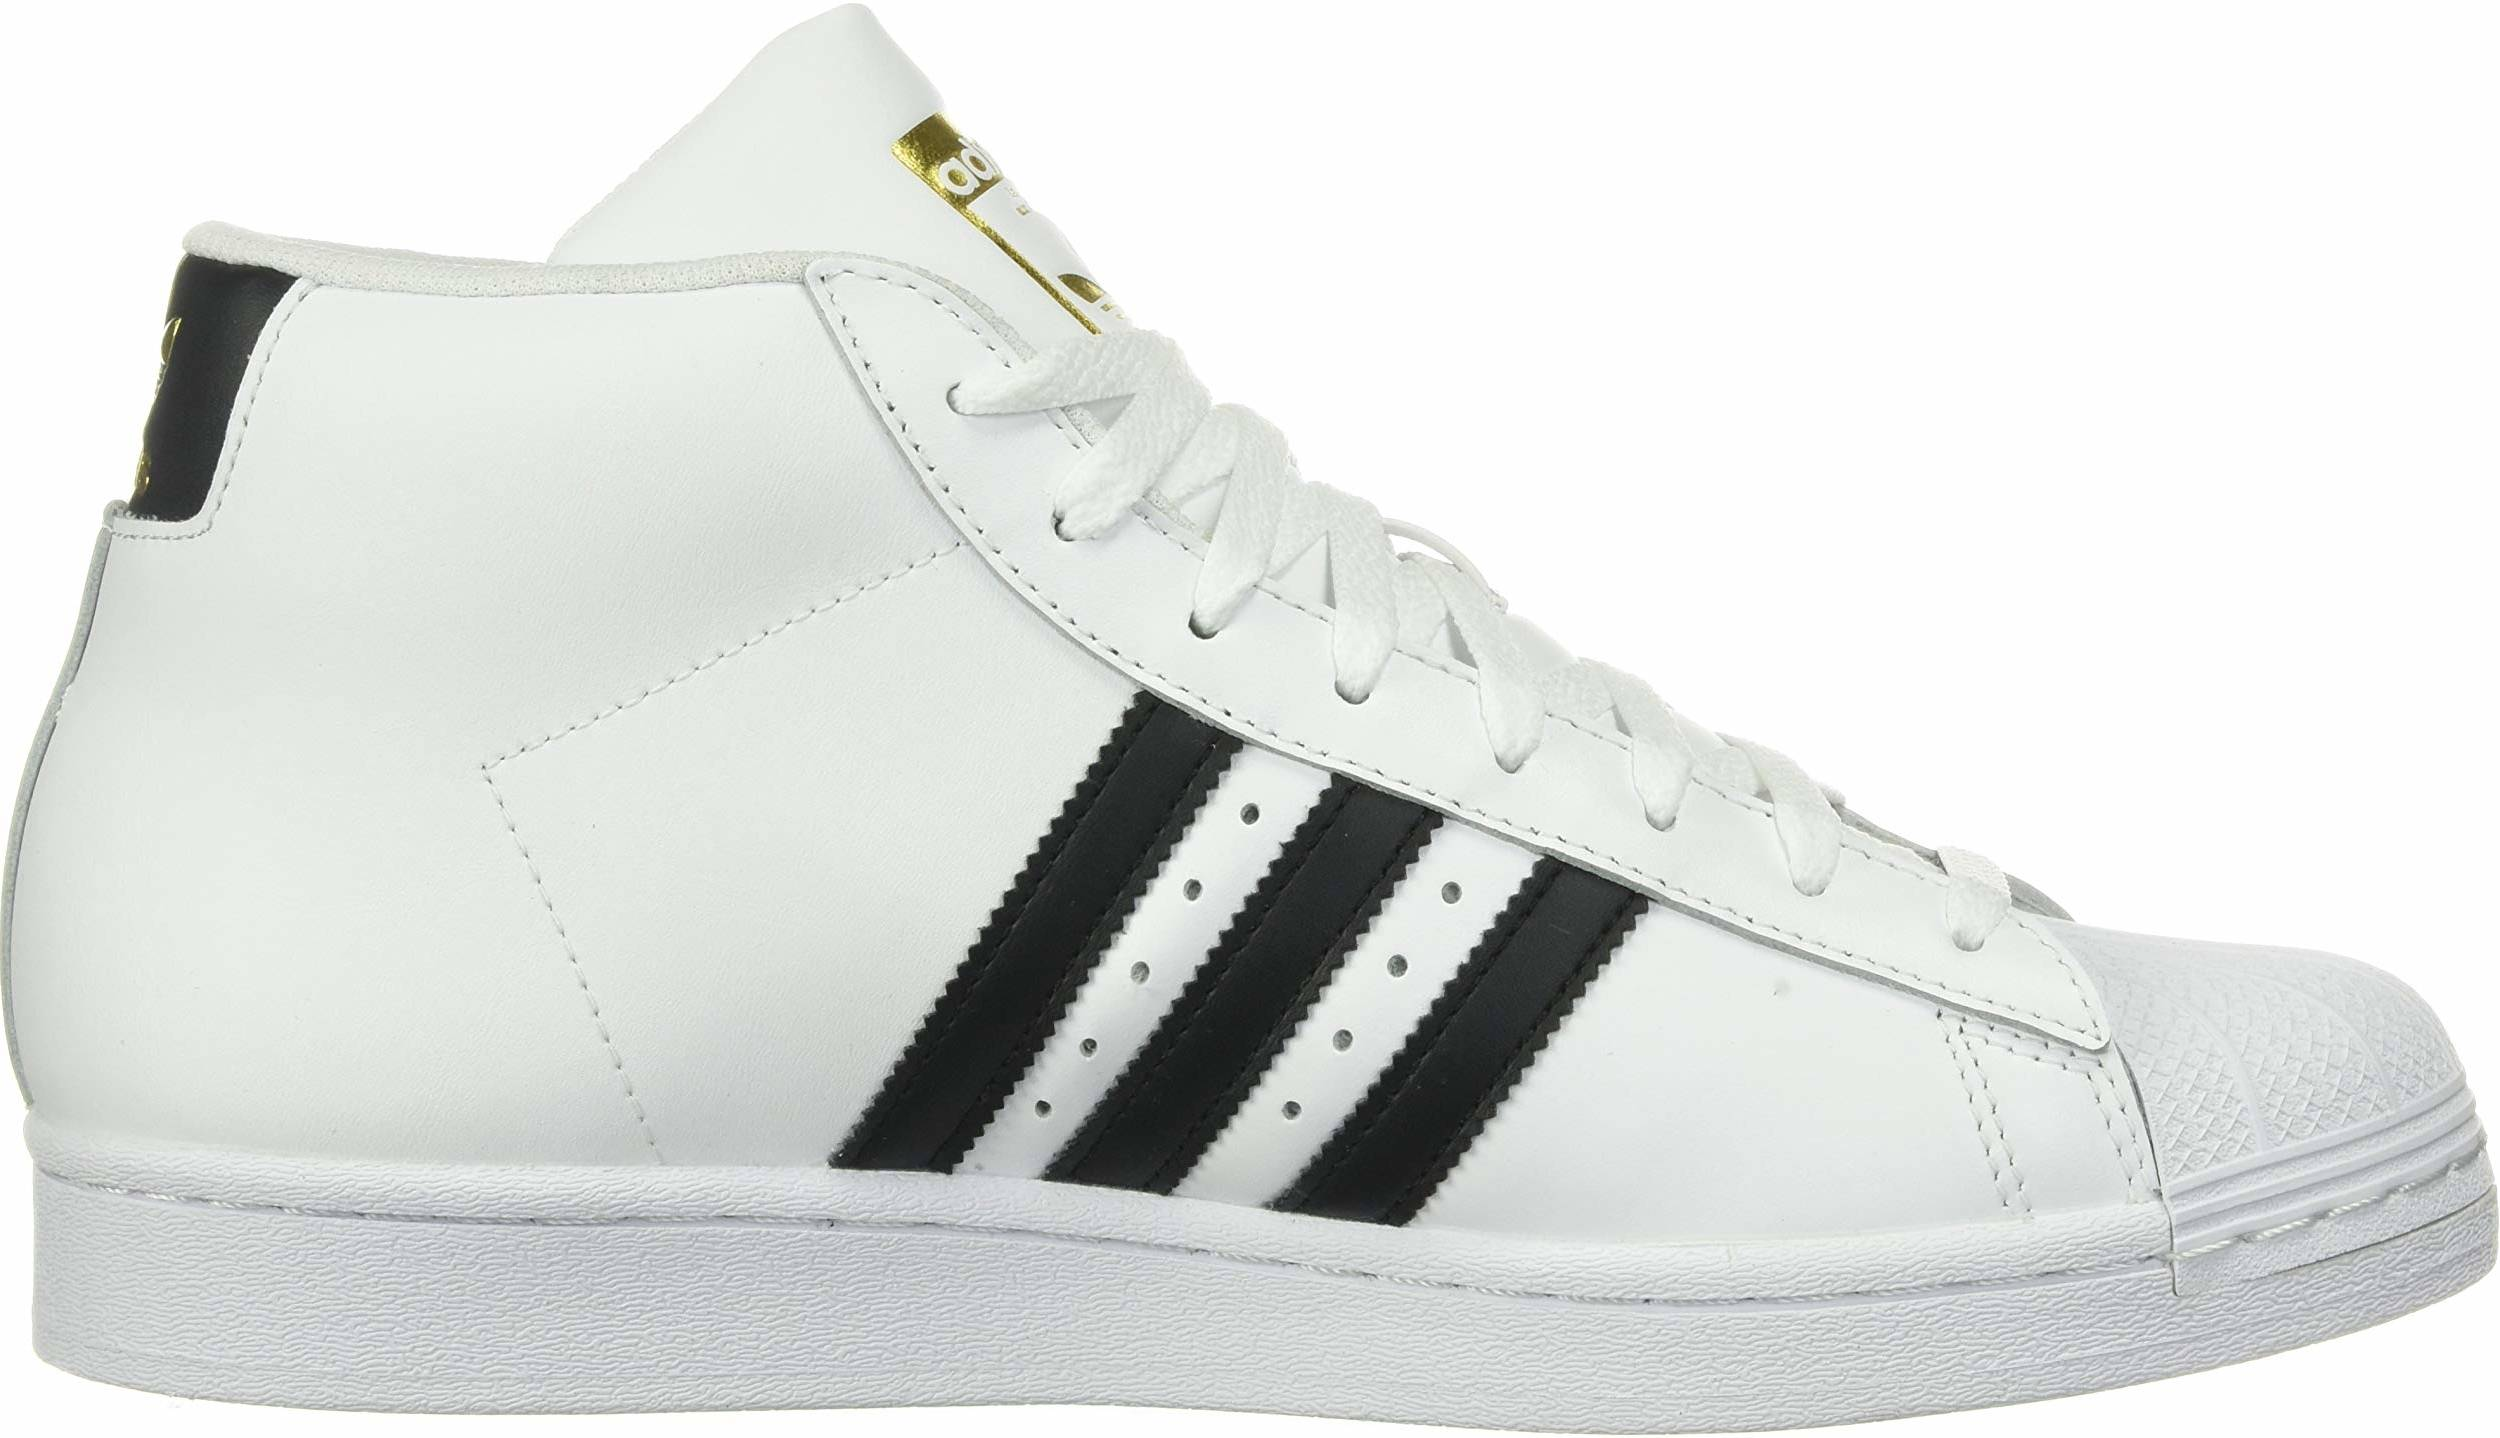 Adidas Pro Model sneakers in 10 colors (only $42)   RunRepeat